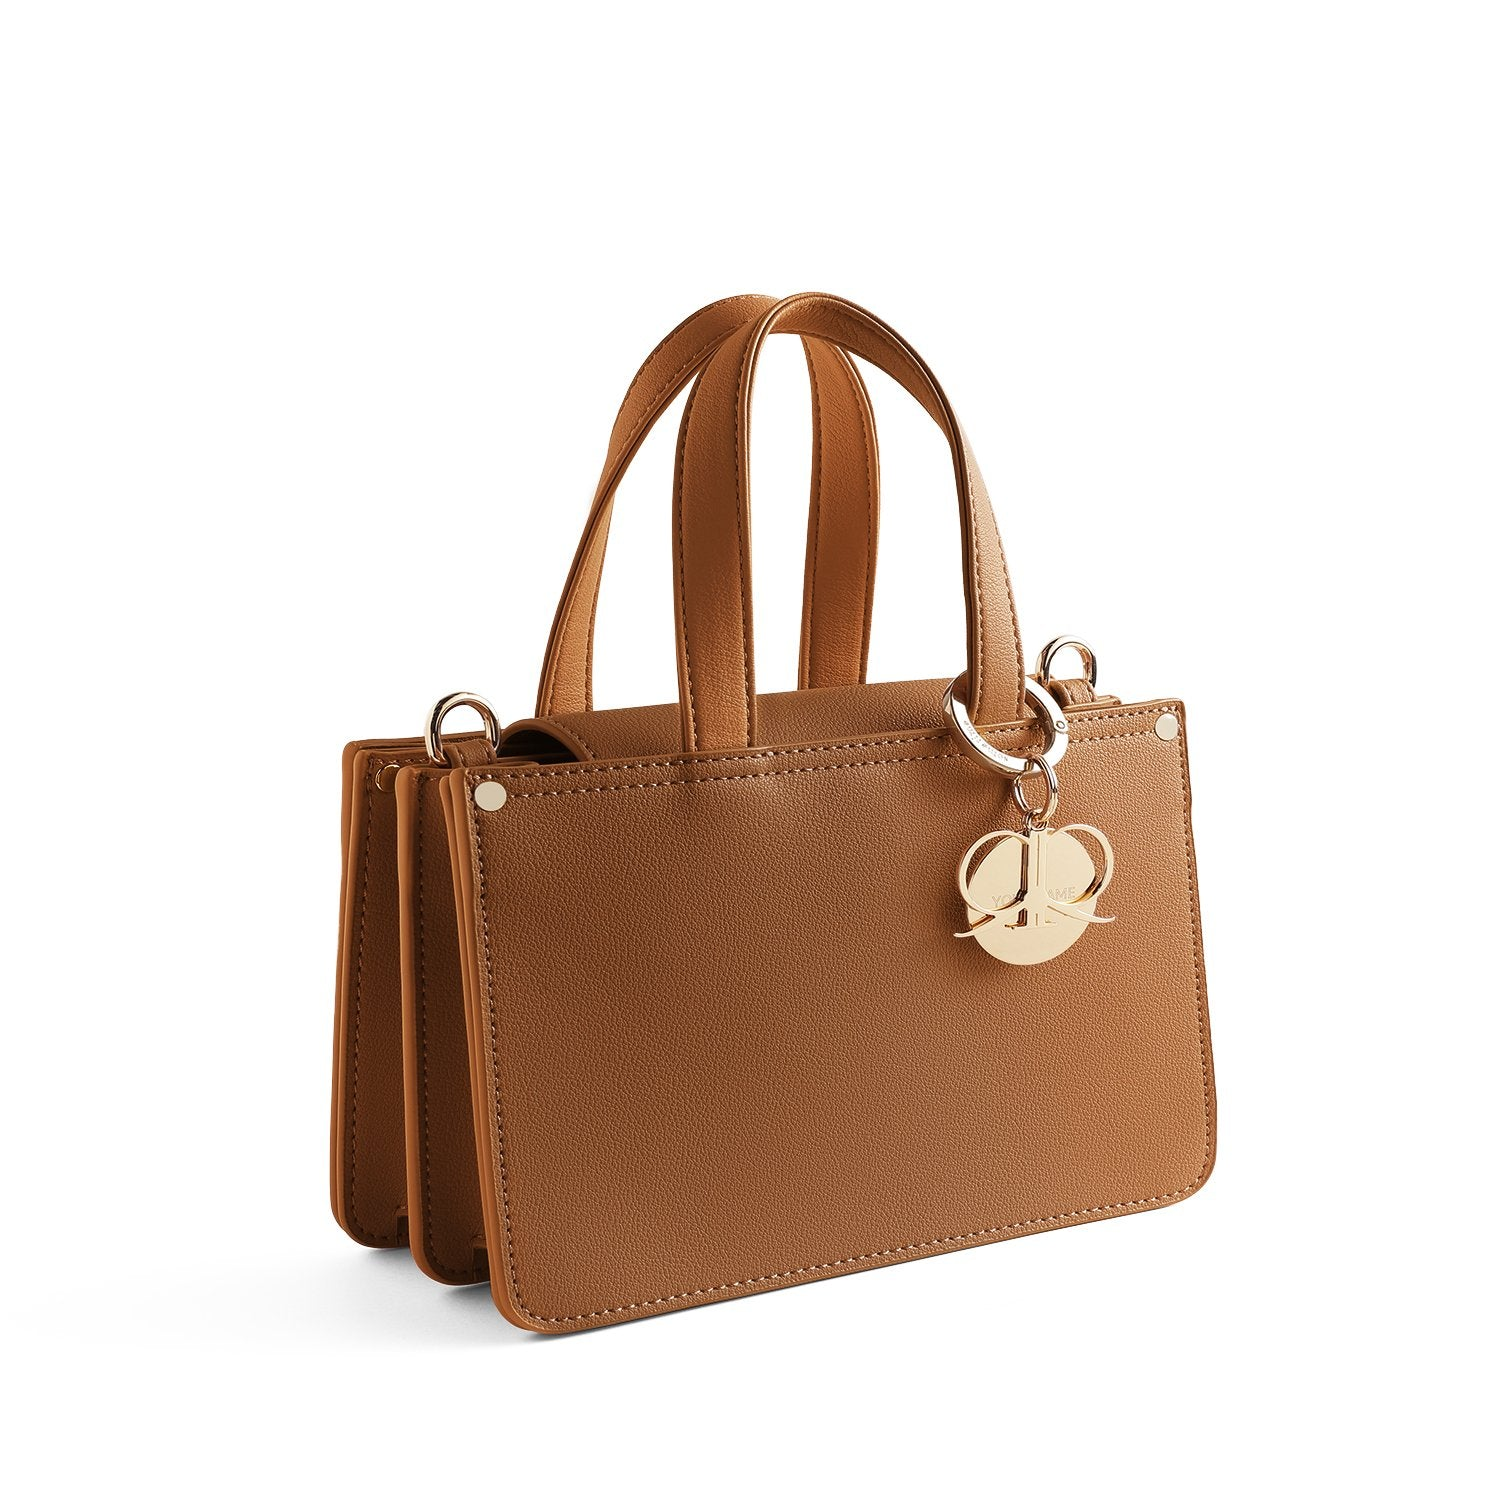 RR Bag 2 - Brown